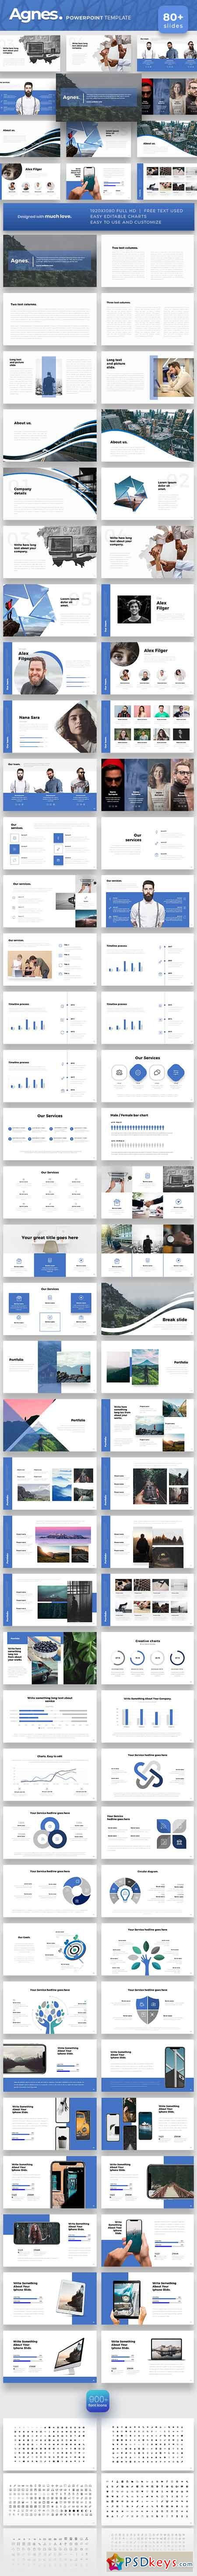 Agnes Powerpoint Template 23070296